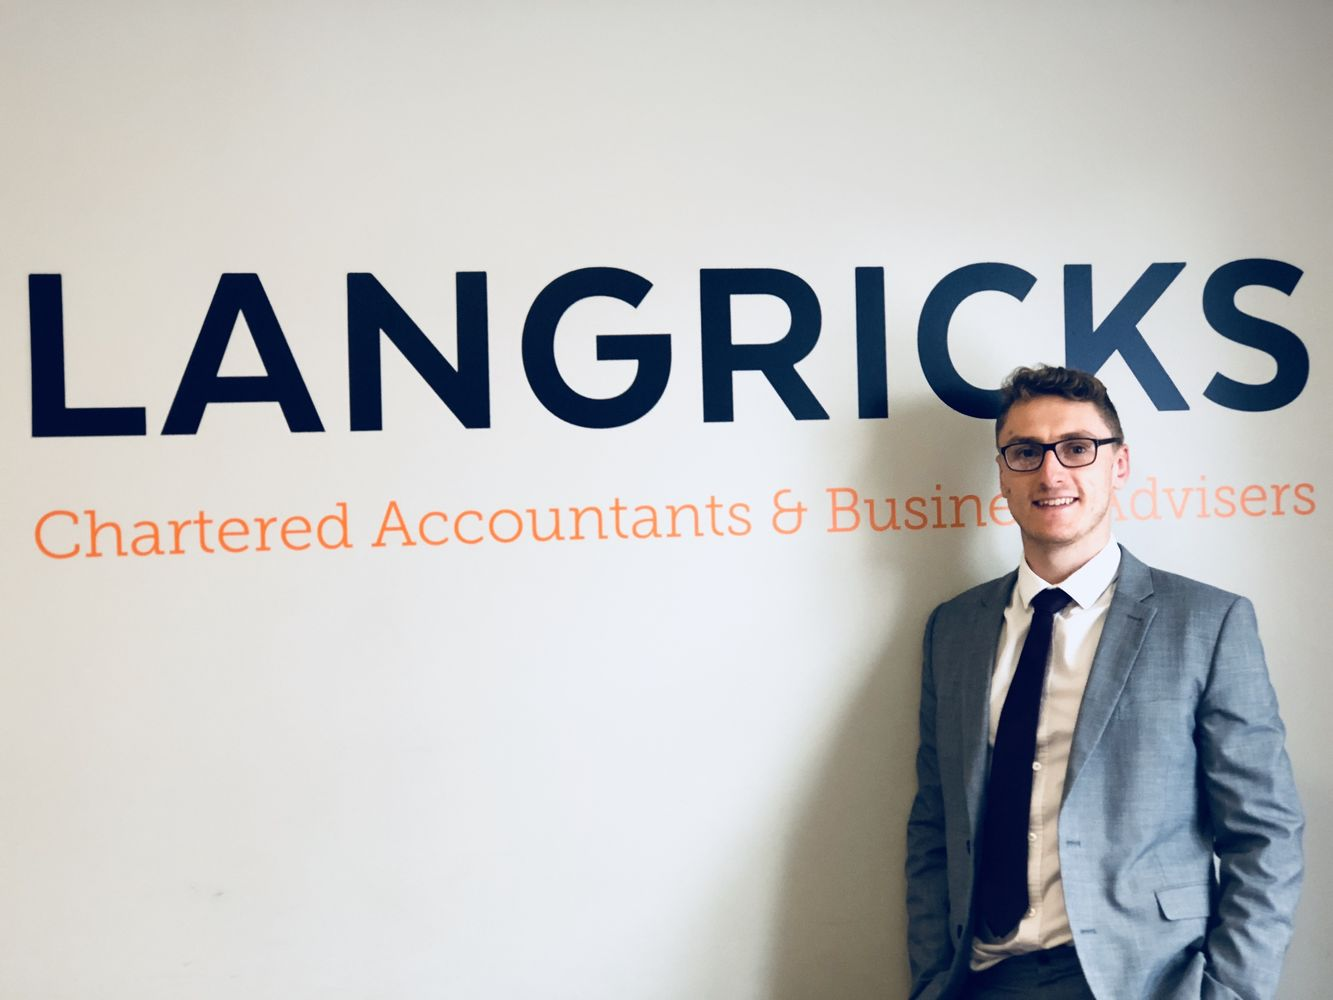 Chris Howells, Assistant Manager, Langricks